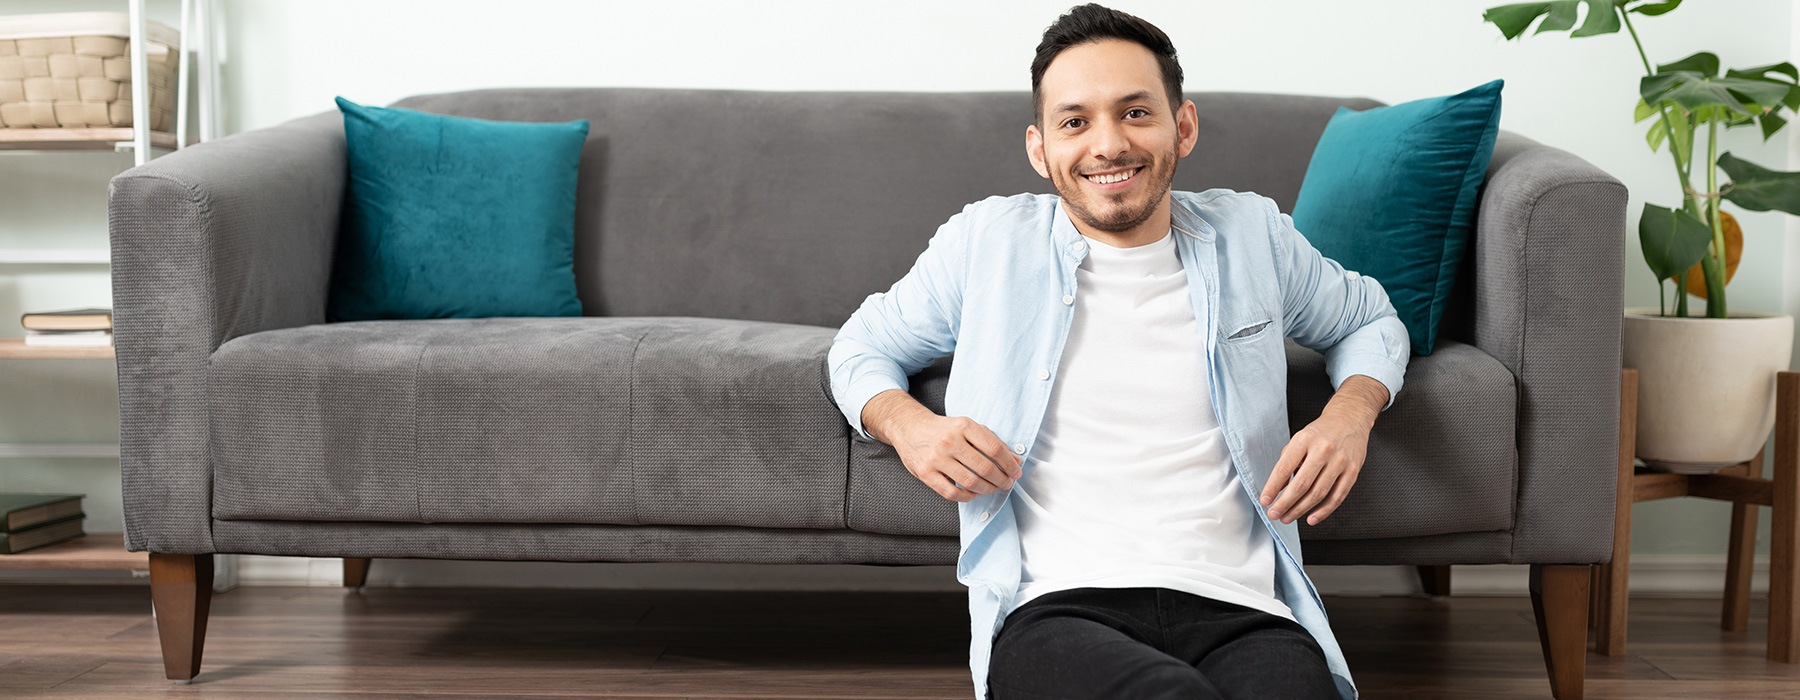 lifestyle image of a man in front of a couch